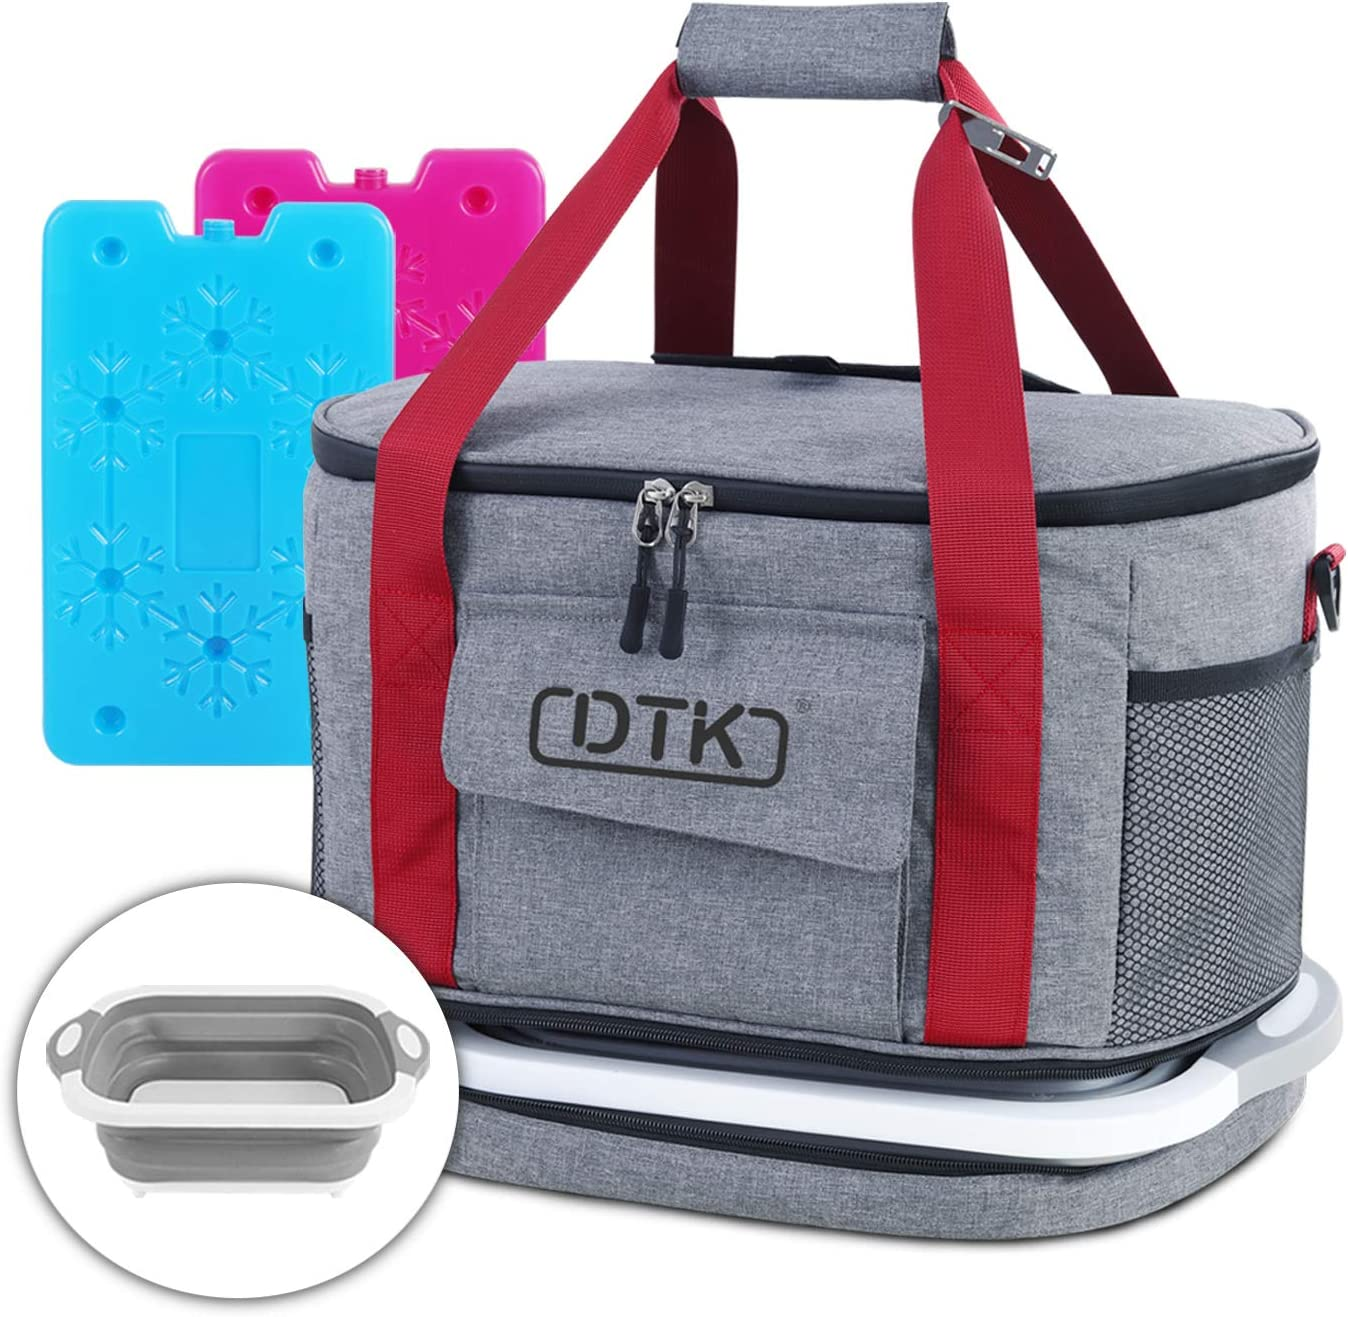 DTK Soft Cooler Bag with Collapsible Cutting Board, Insulated Leakproof Portable Cooler Tote, 45Can/30L Large Soft Sided Collapsible Camping Cooler with 2 Ice Pack for Picnic Beach Travel BBQ